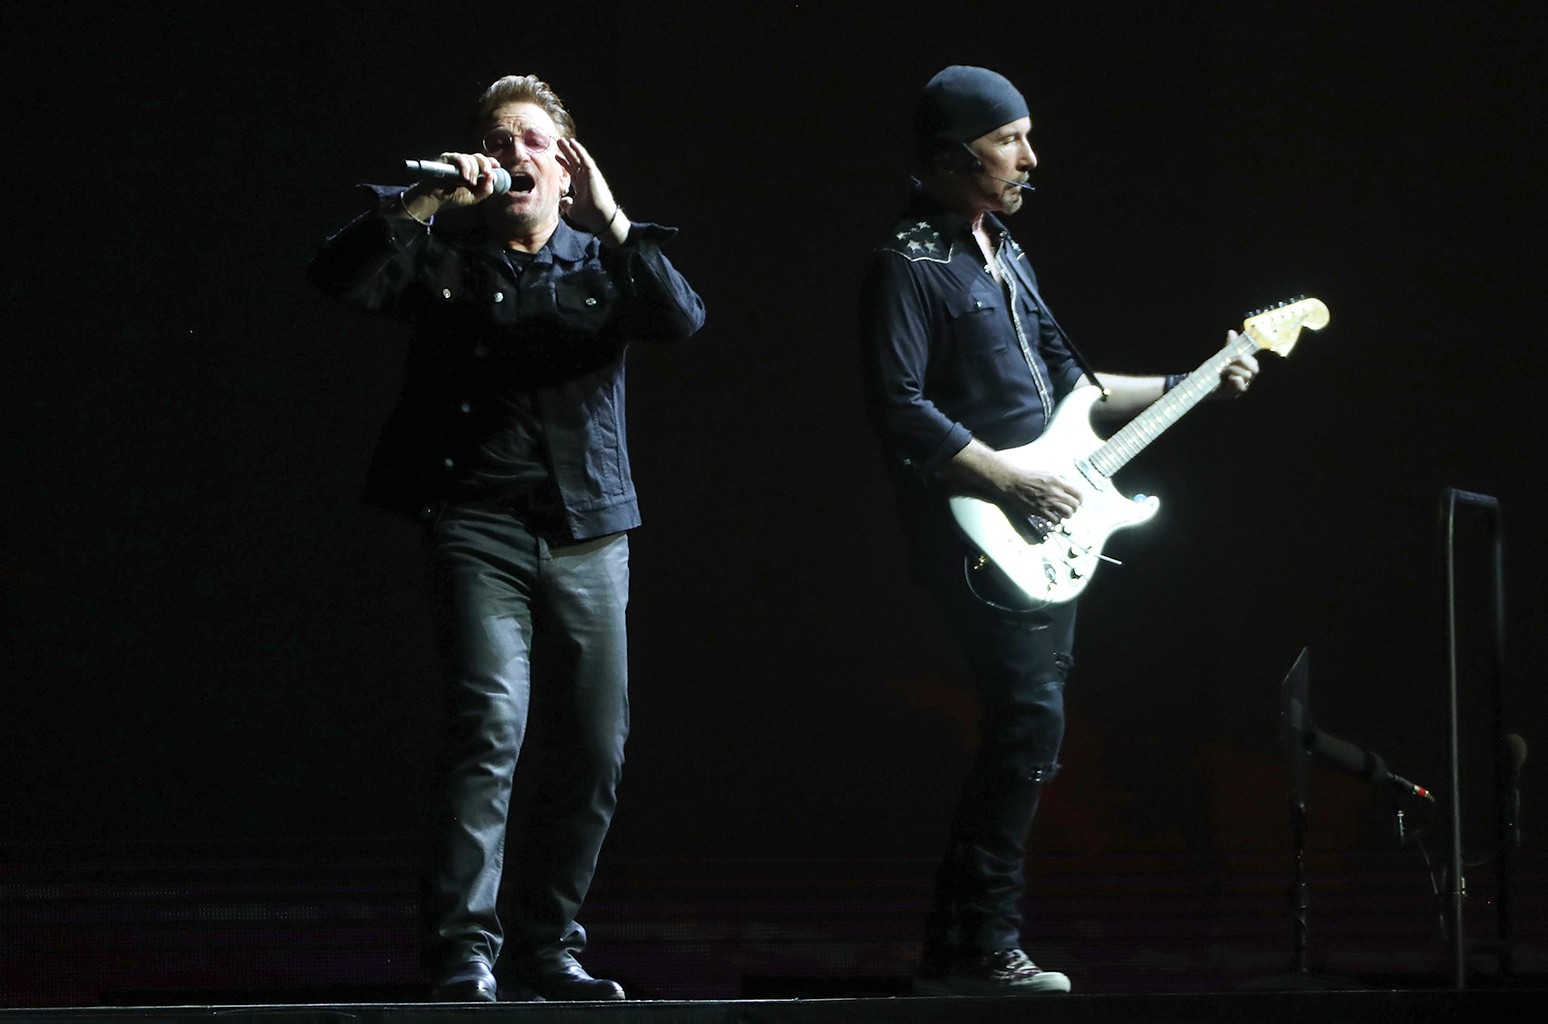 Bono and The Edge of U2 perform at the Rogers Centre on their Joshua Tree 30th anniversary tour in Toronto on June 23, 2017.  (